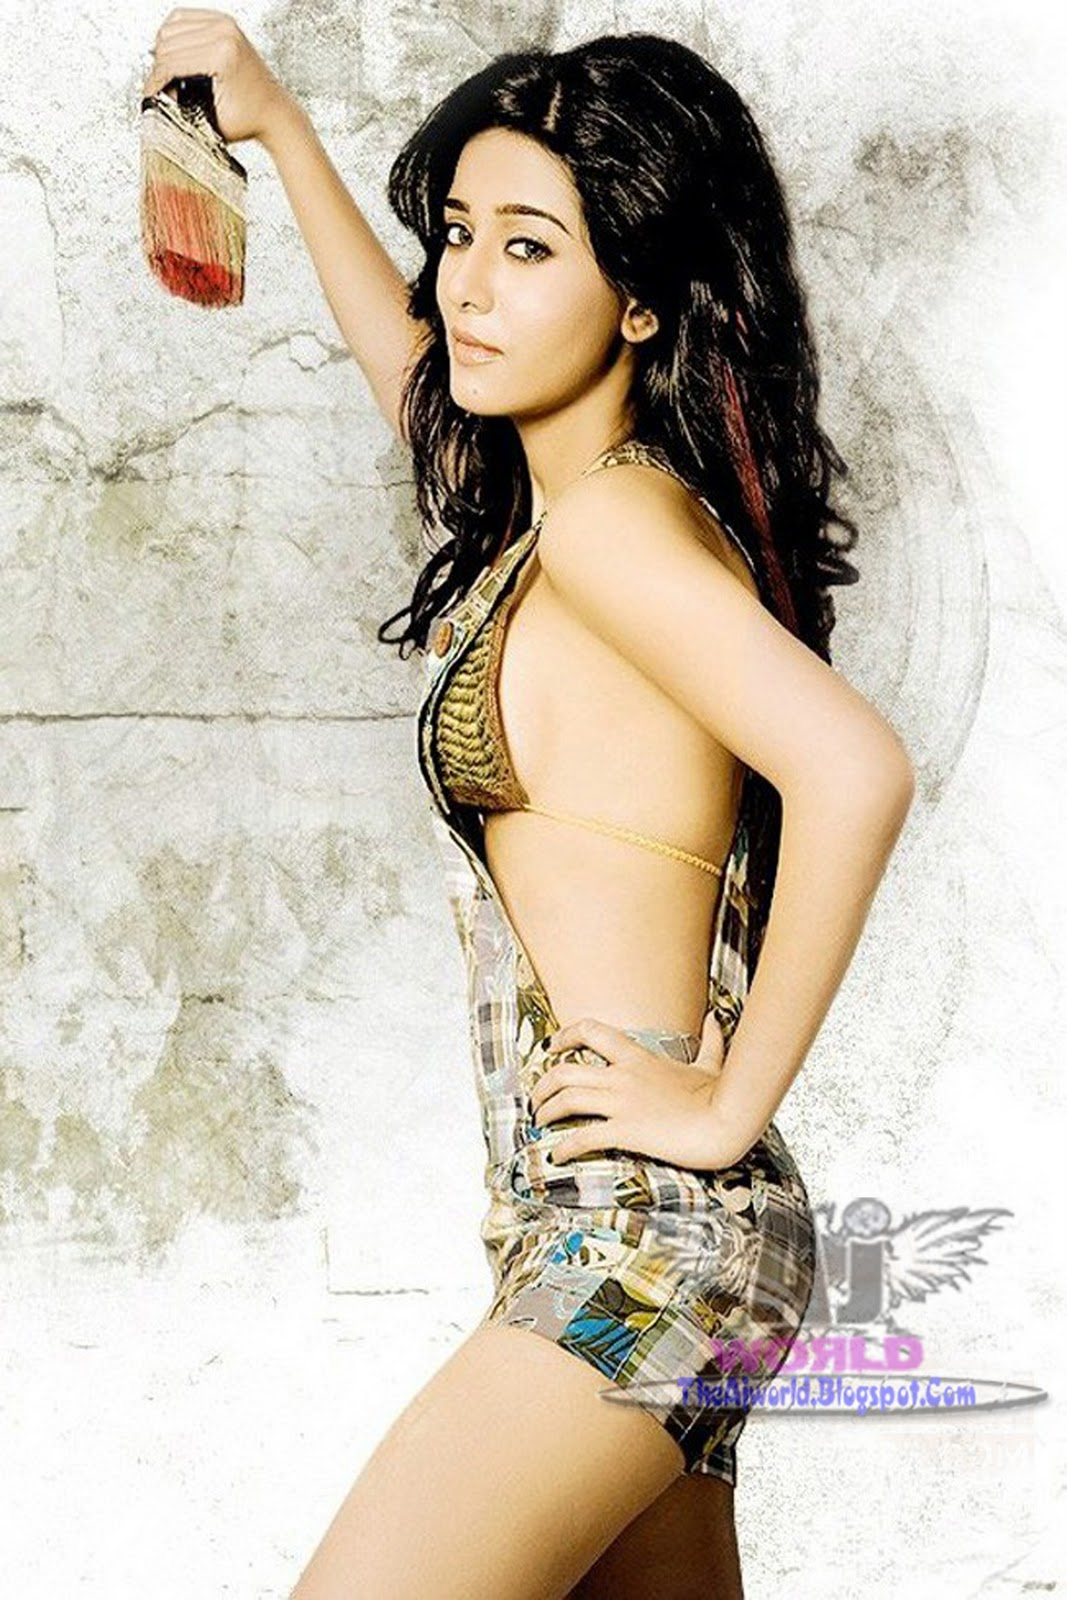 The Hot Indian Celebrity Amrita Rao Is Naked Showing Boobs